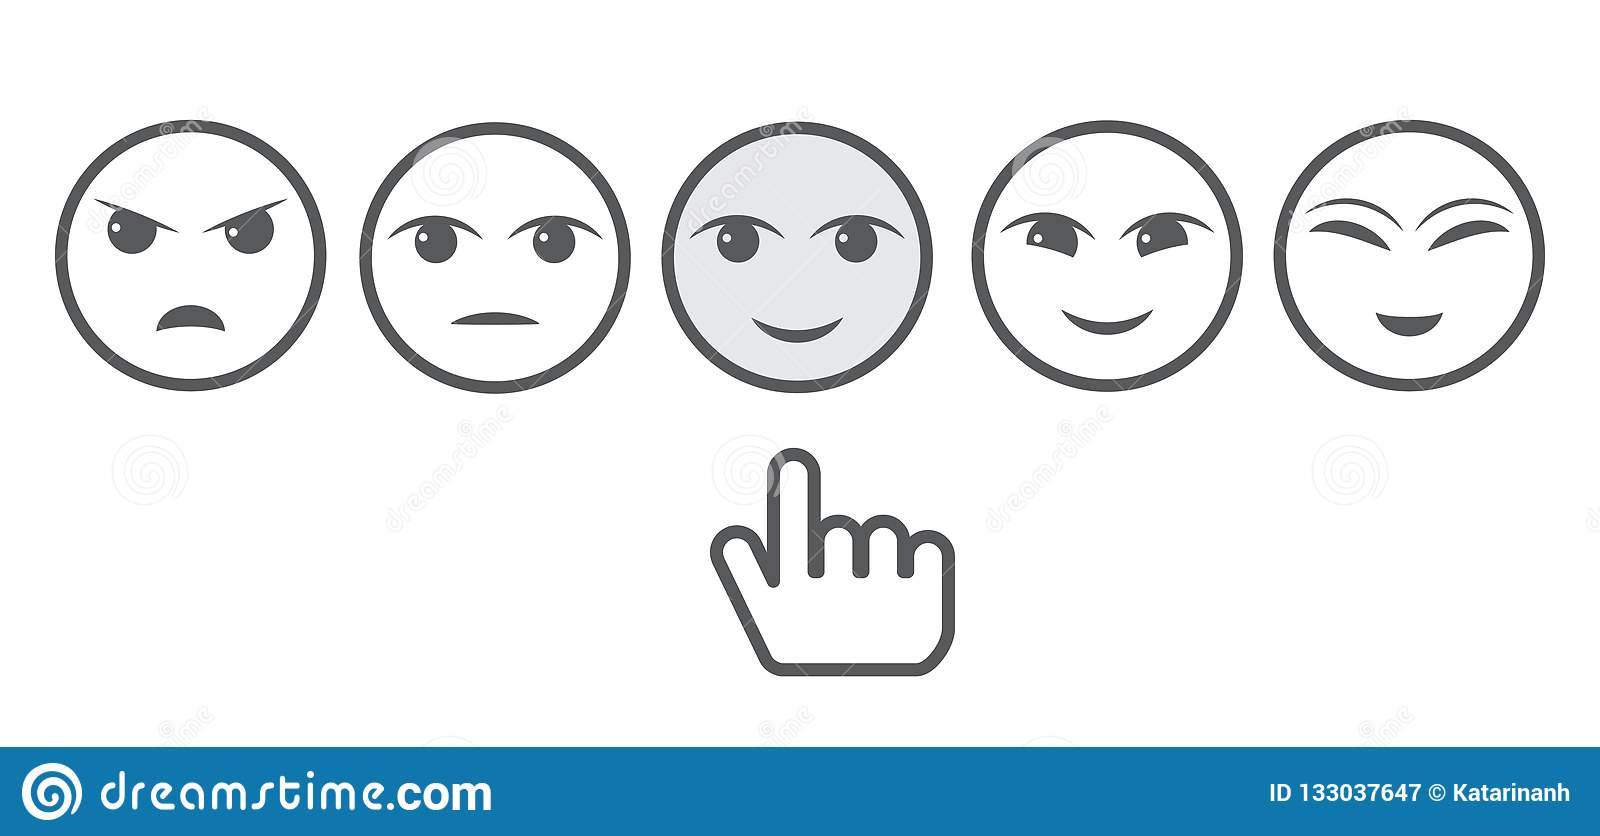 Five Gray Faces Feedback/Mood and hand. Iconic illustration of satisfaction level. Range to assess the emotions of your content.